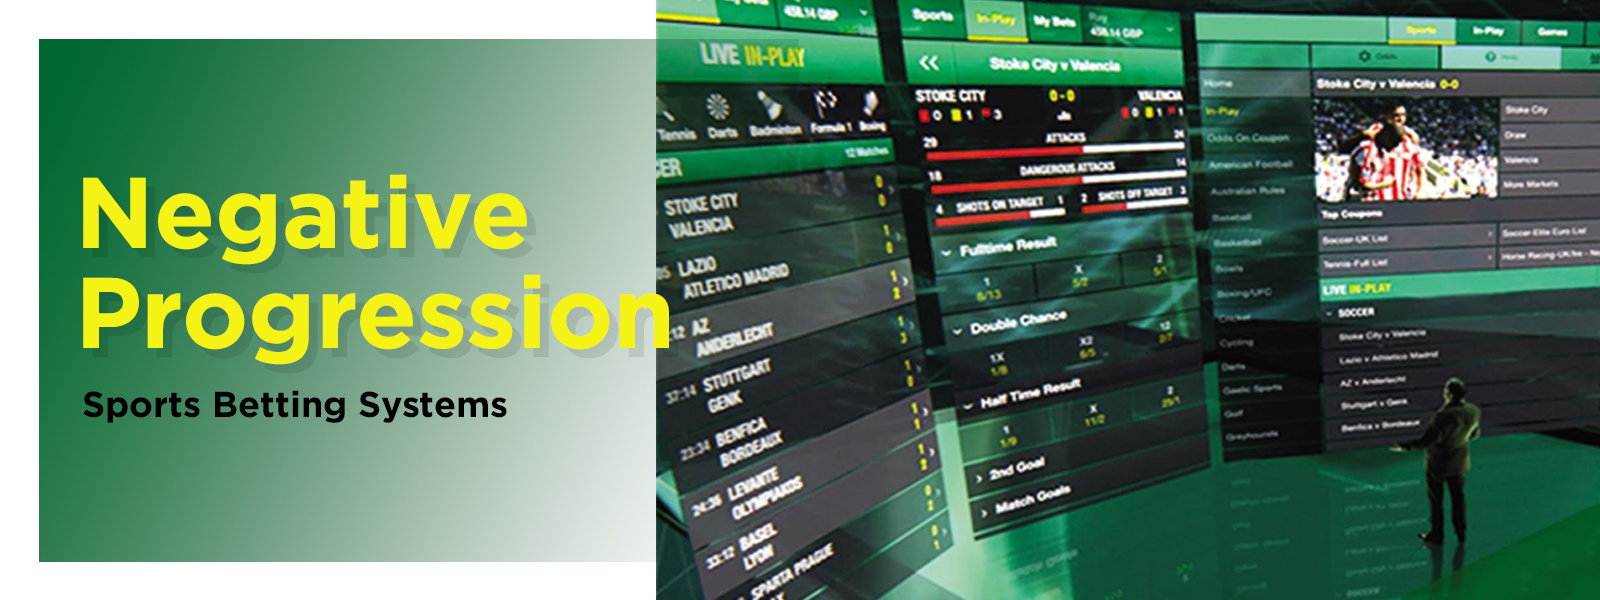 Negative Progression Sports Betting Systems